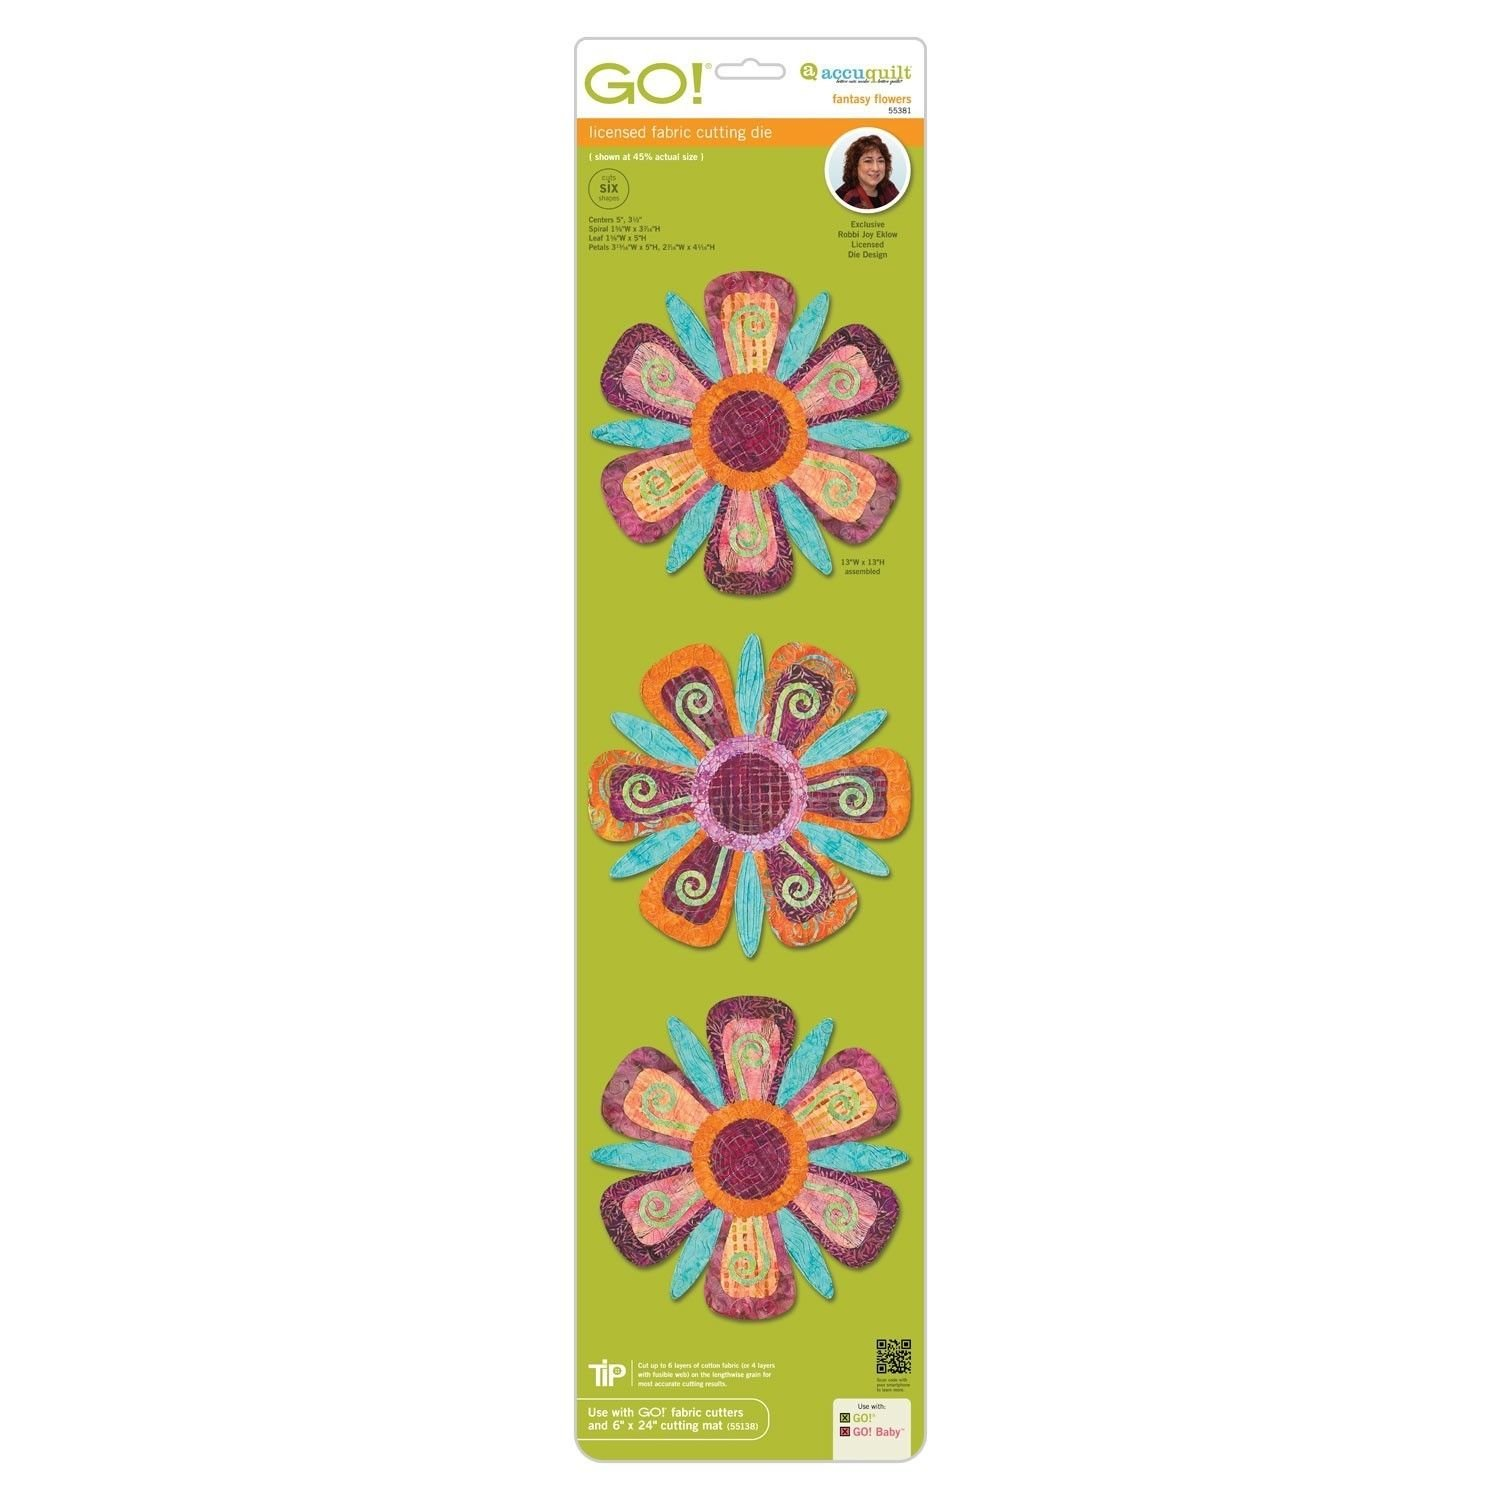 Amazon Accuquilt Go Fantasy Flowers By Robbi Joy Eklow Home